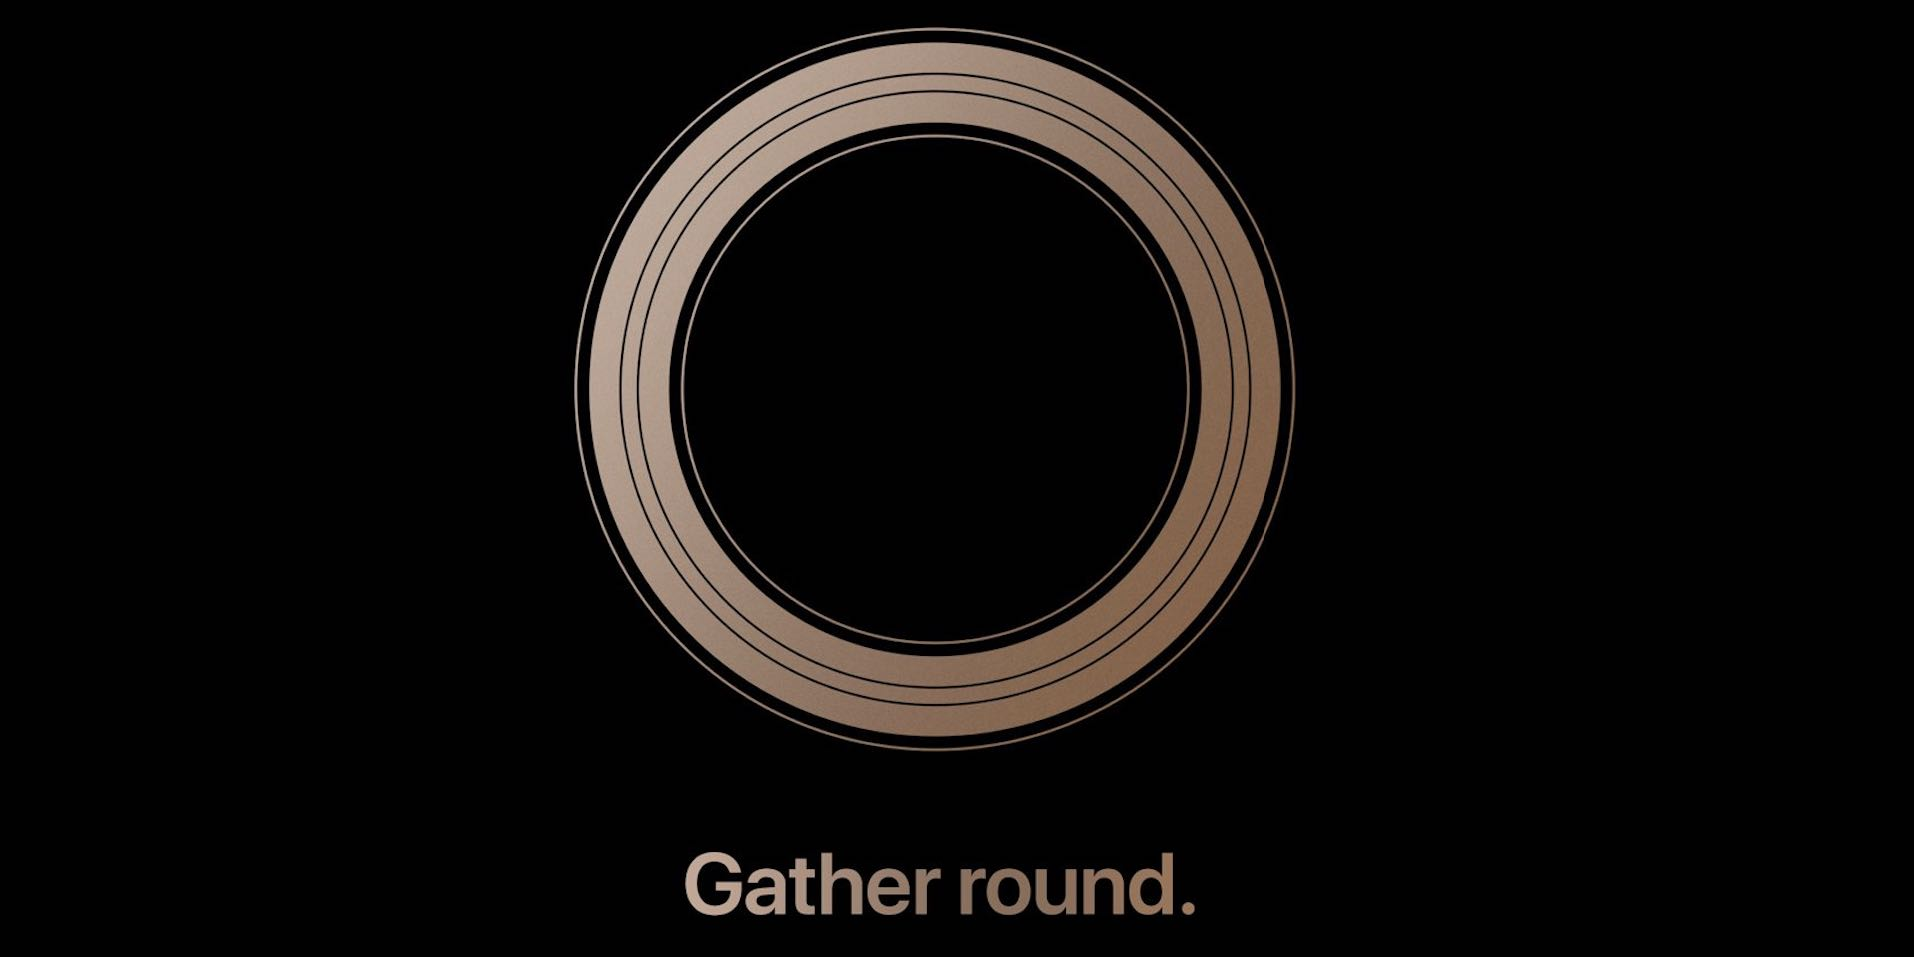 Apple announces next iPhone event for September 12: 'Gather round'